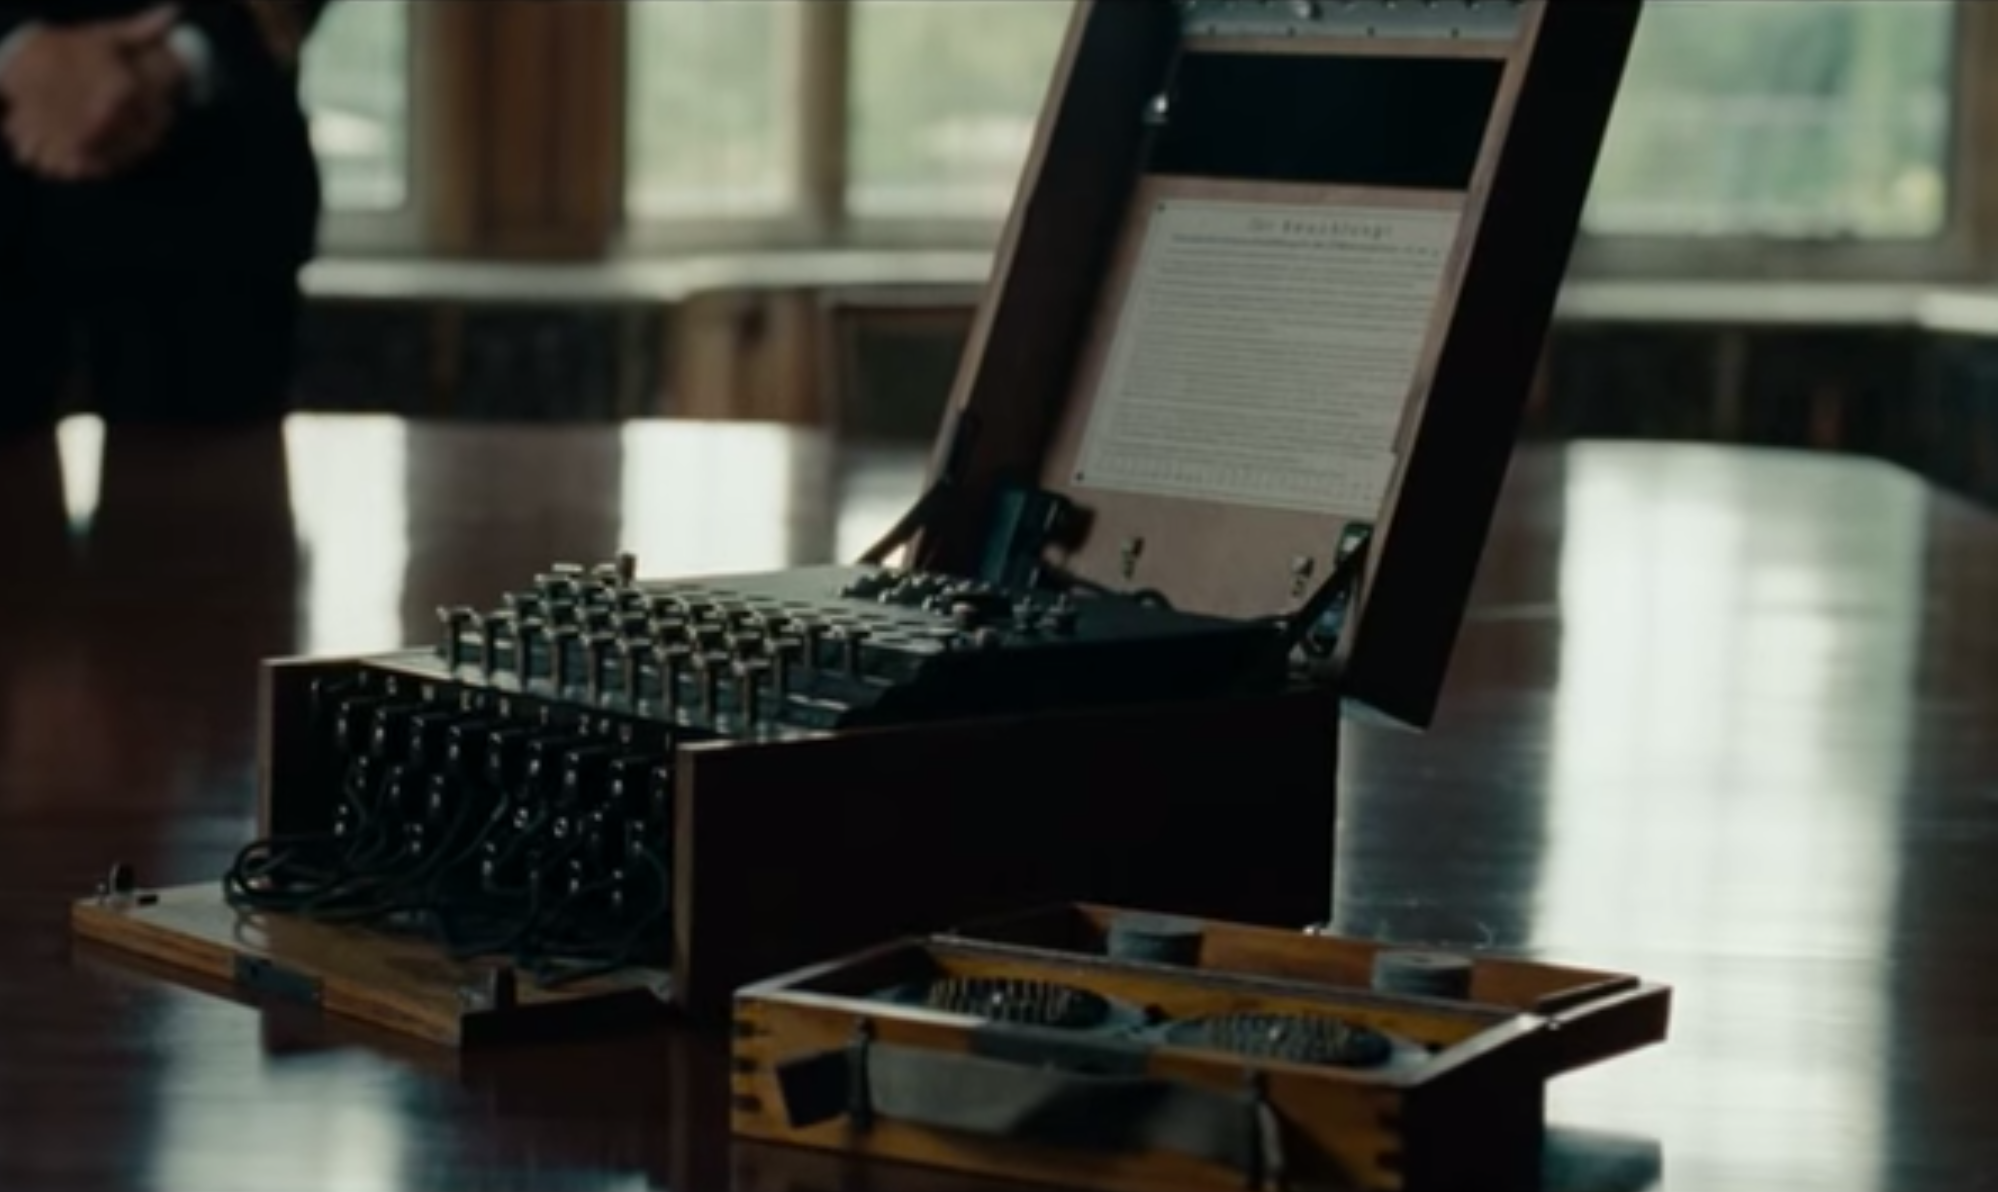 Understanding The Enigma Machine With 30 Lines Of Ruby Star Wiring Diagram Shot In Imitation Game 2014